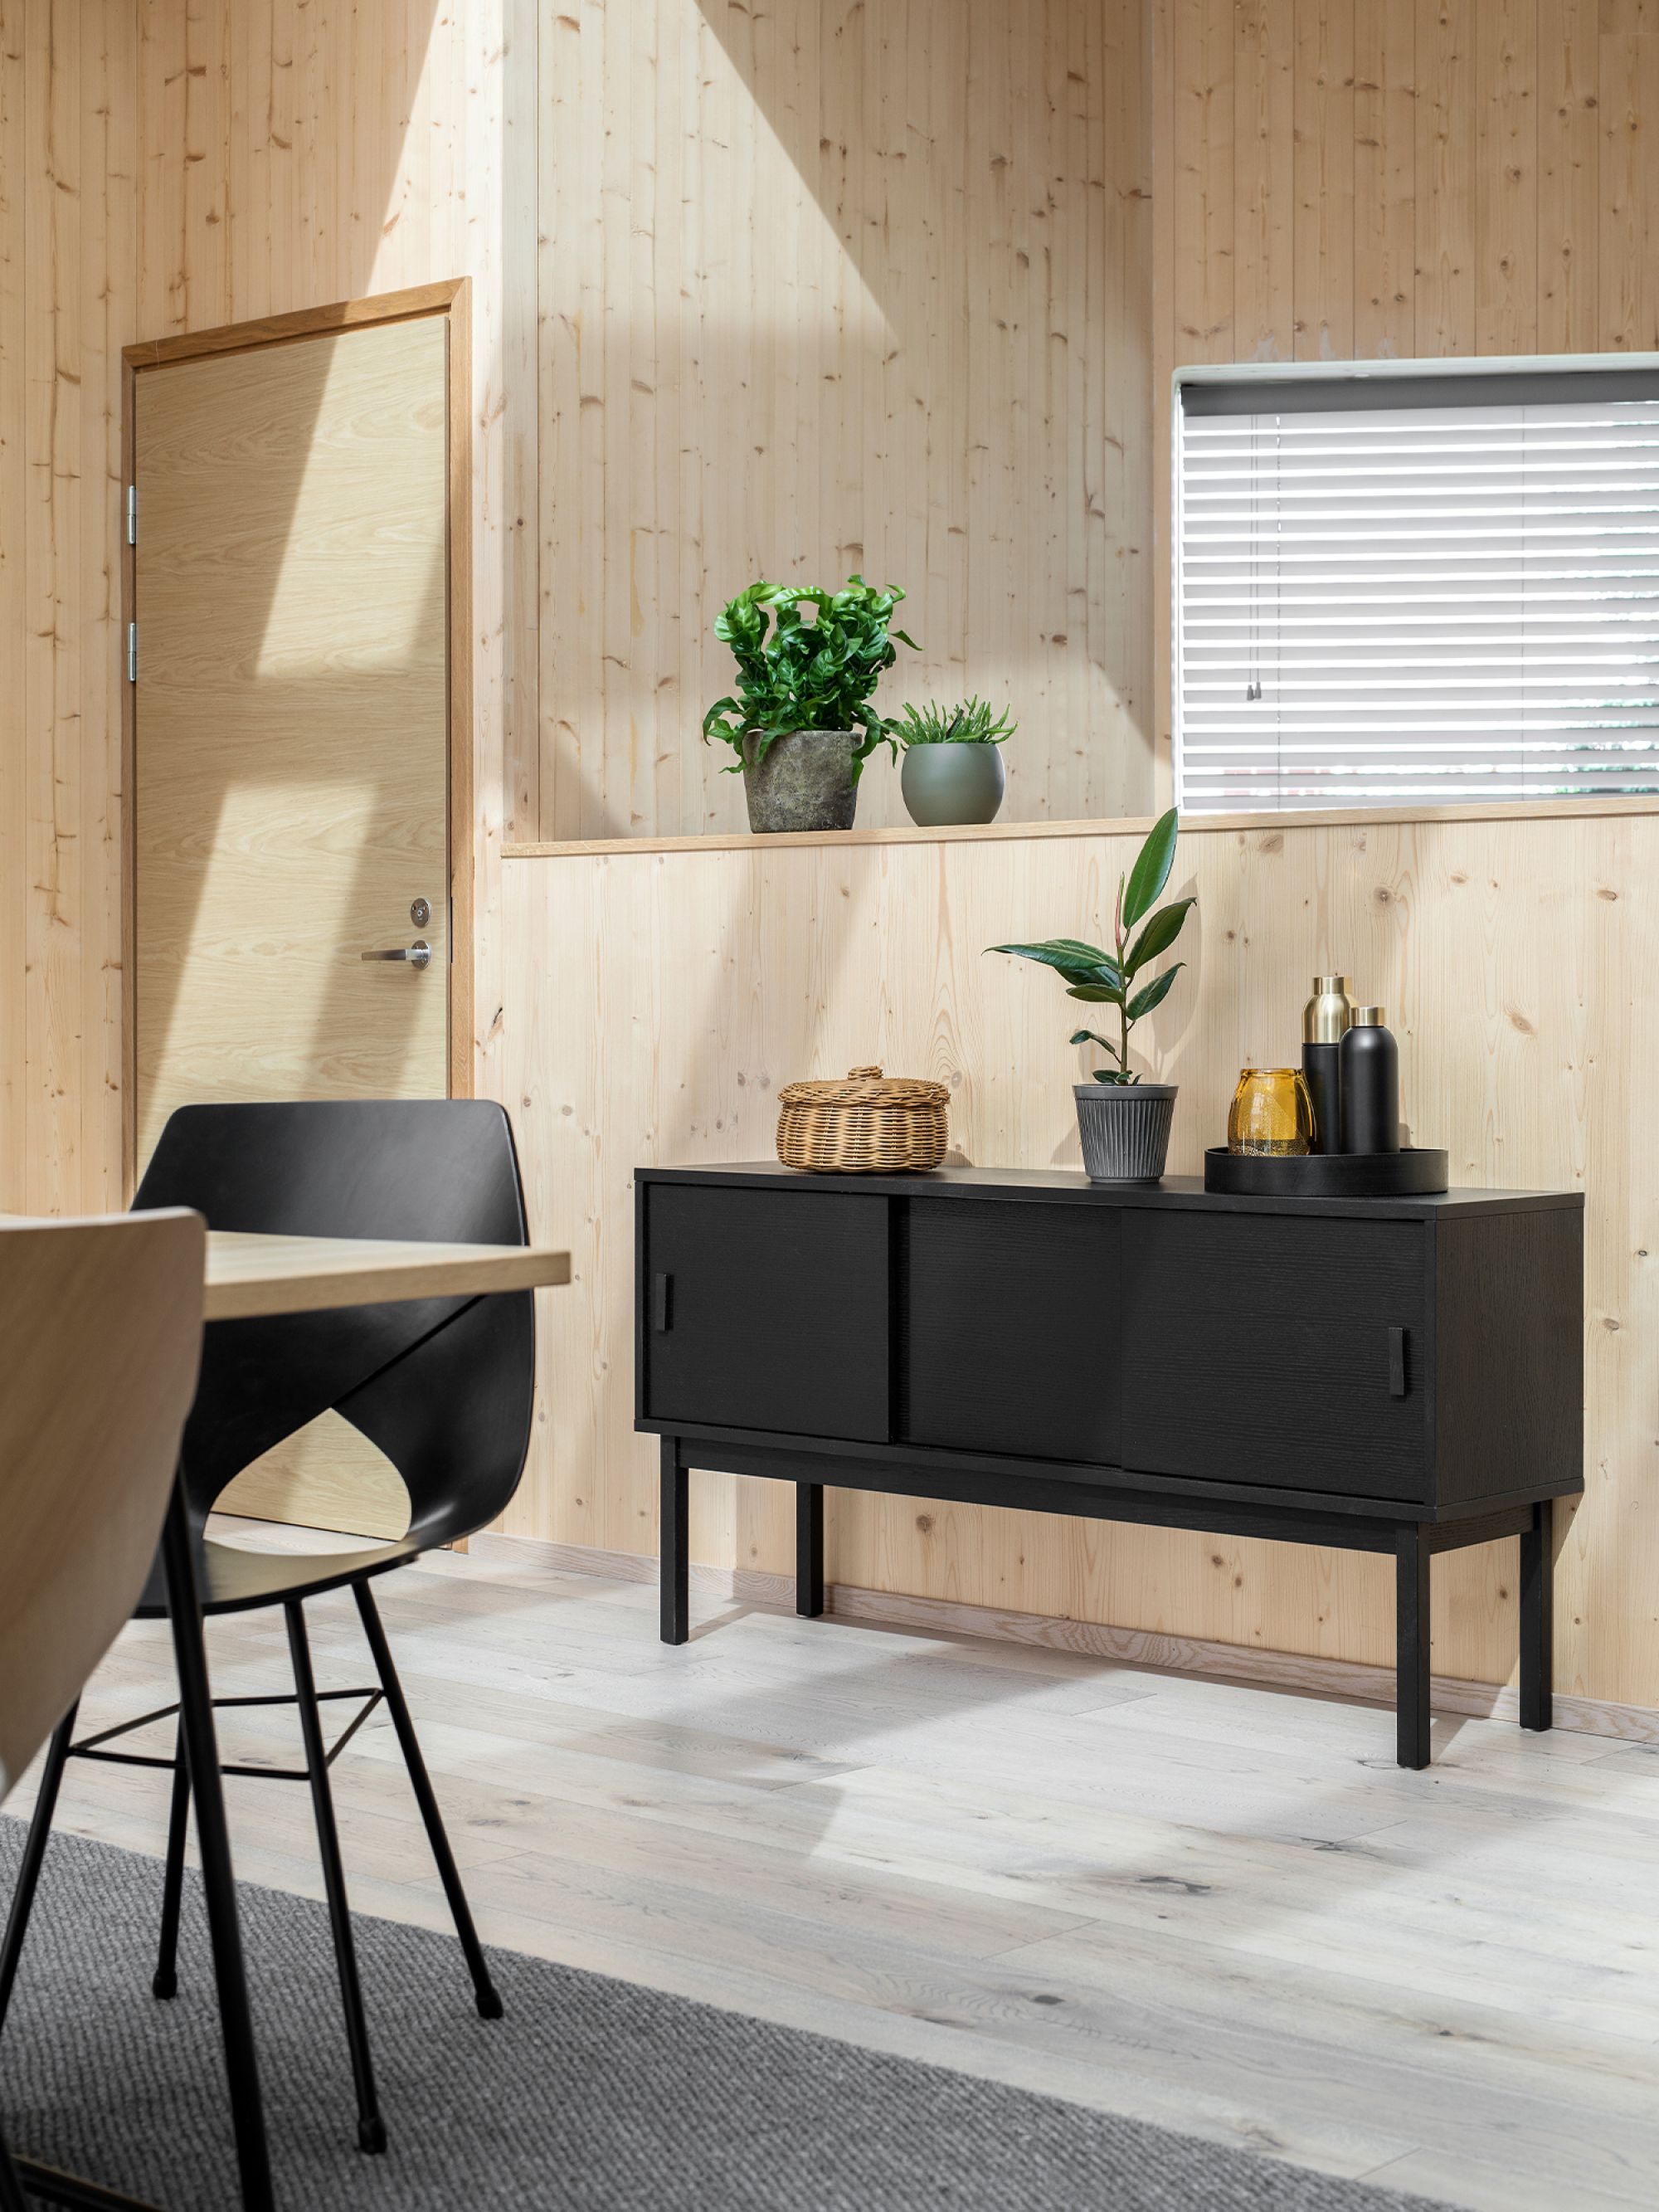 Black cabinet in wooden dining interior